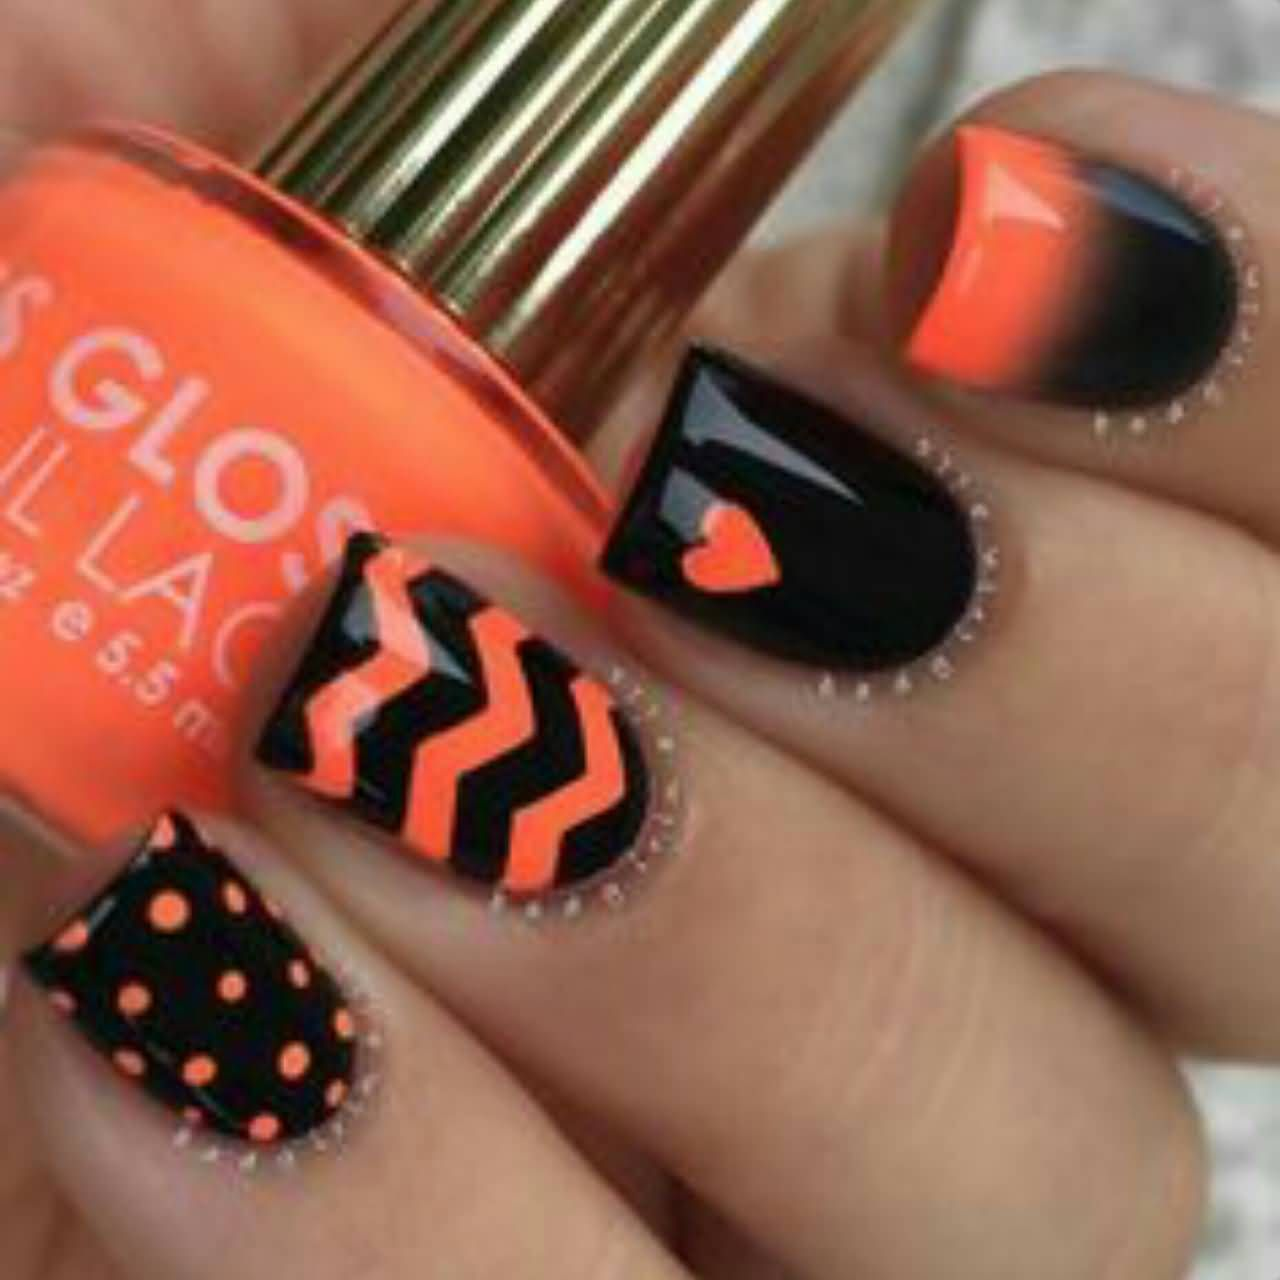 Orange And Black Chevron Dots Nail Art Design | Stylish nails ...